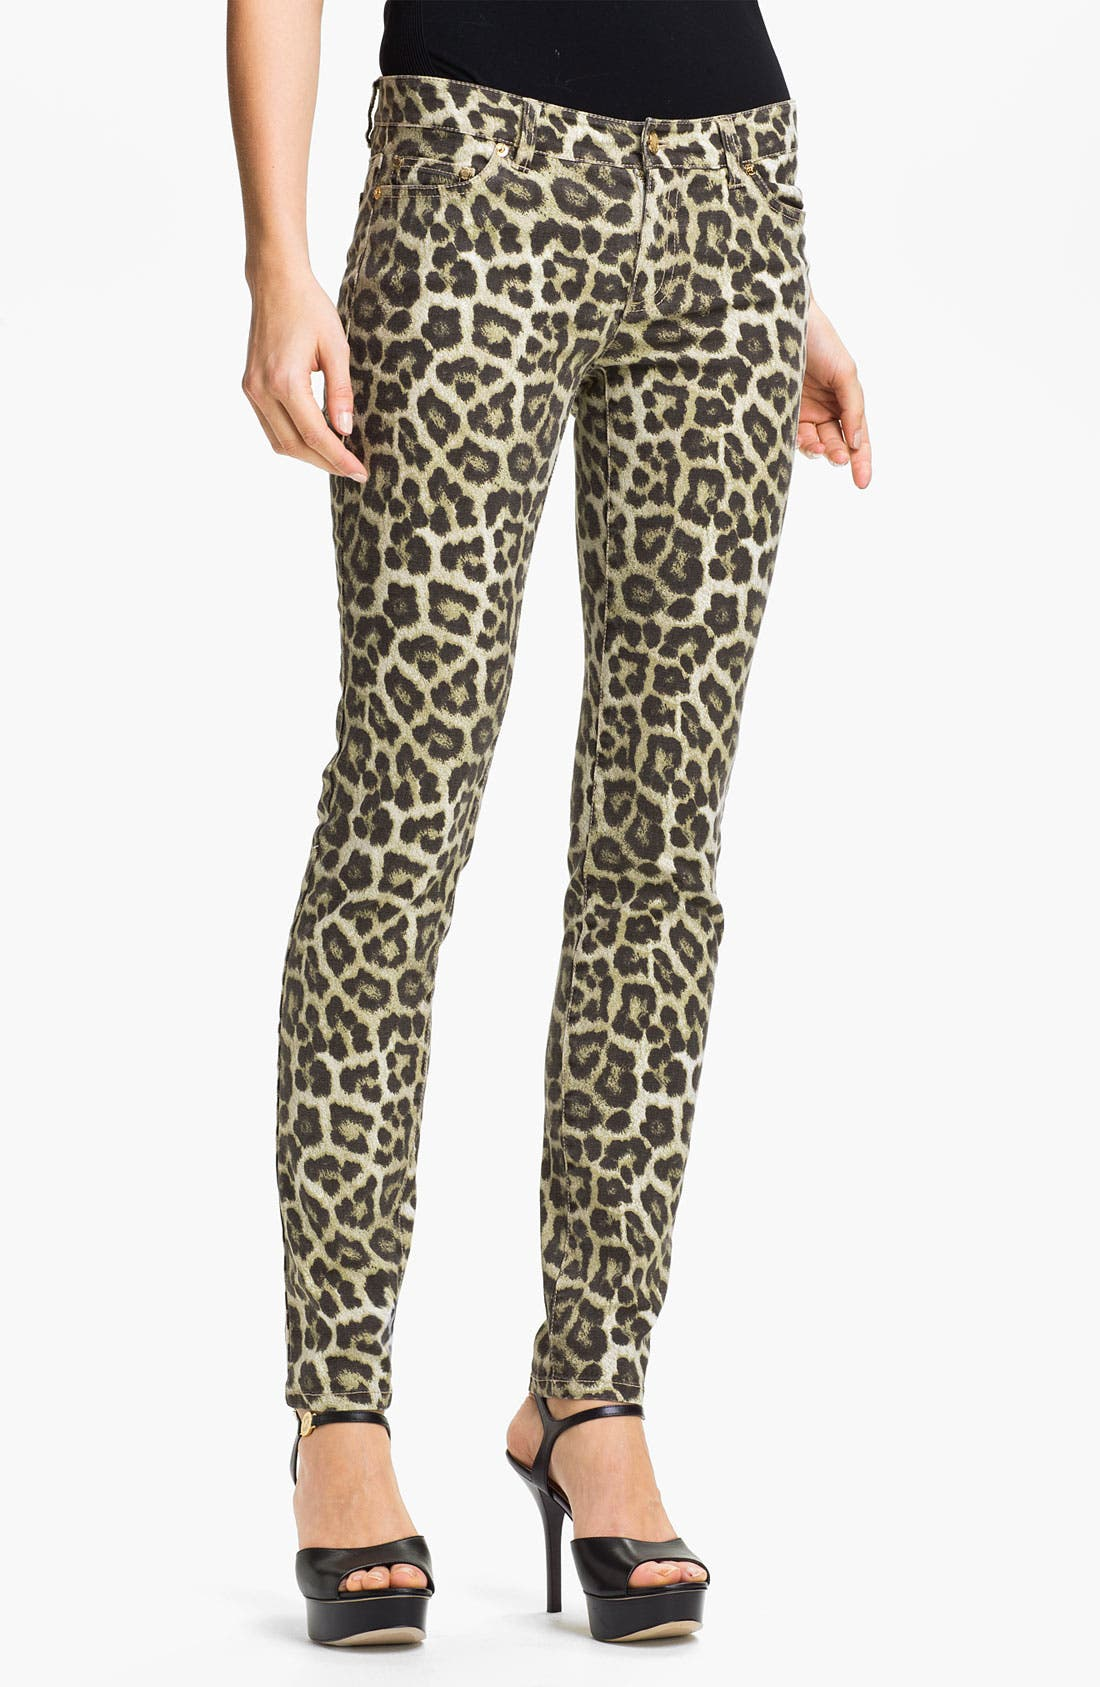 Alternate Image 1 Selected - MICHAEL Michael Kors 'Savannah' Leopard Print Skinny Jeans